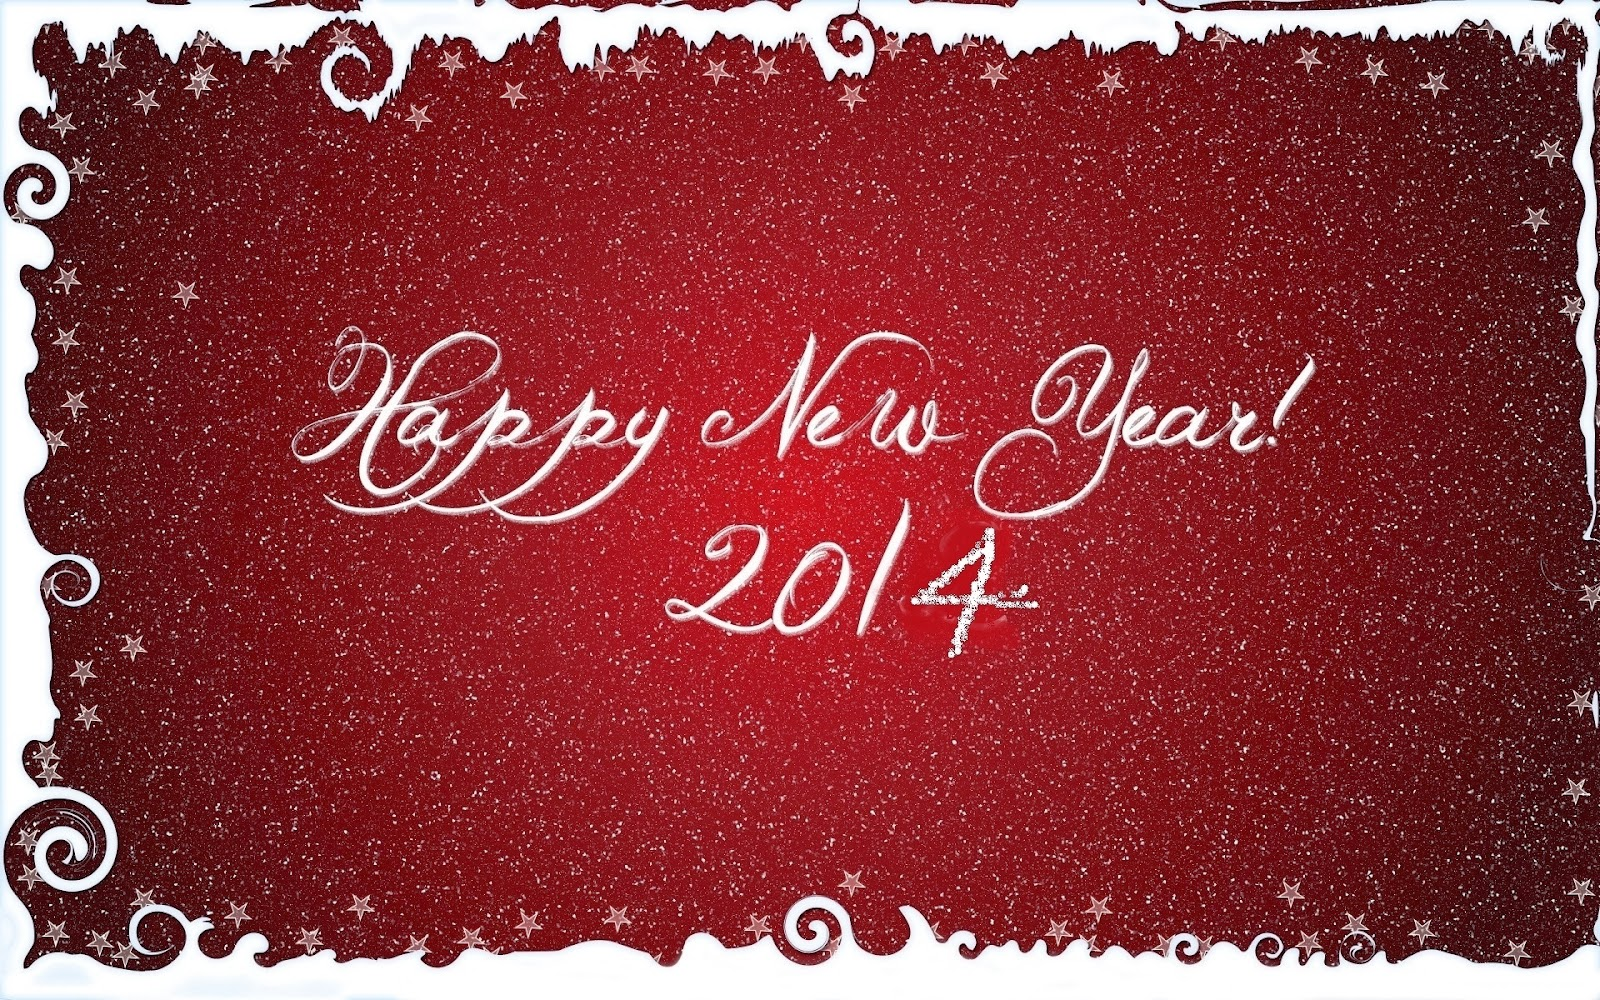 Happy New Year Happy New Year Quotes 2014 Latest New Year Wishes Quotes